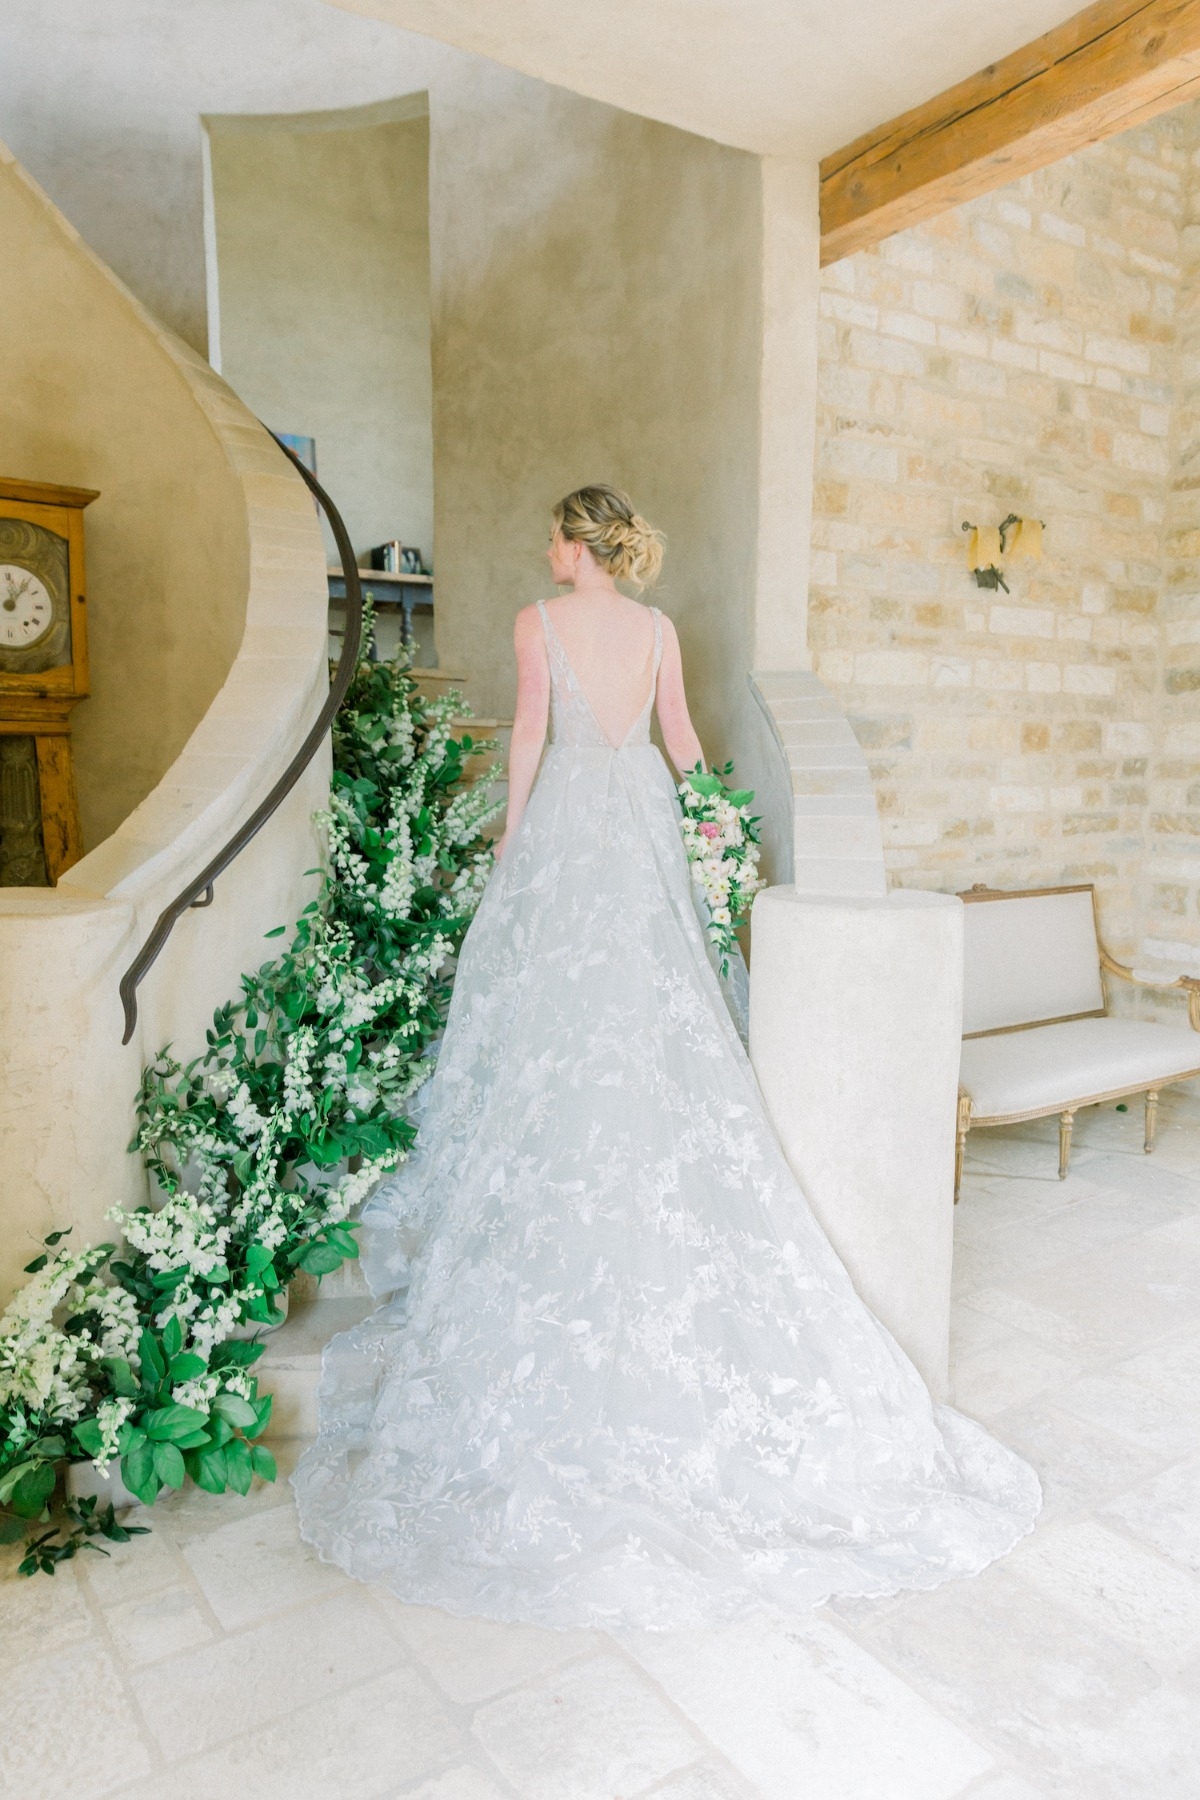 Hailey Paige Bridal wedding gown walking up staircase at Sunstone Villa